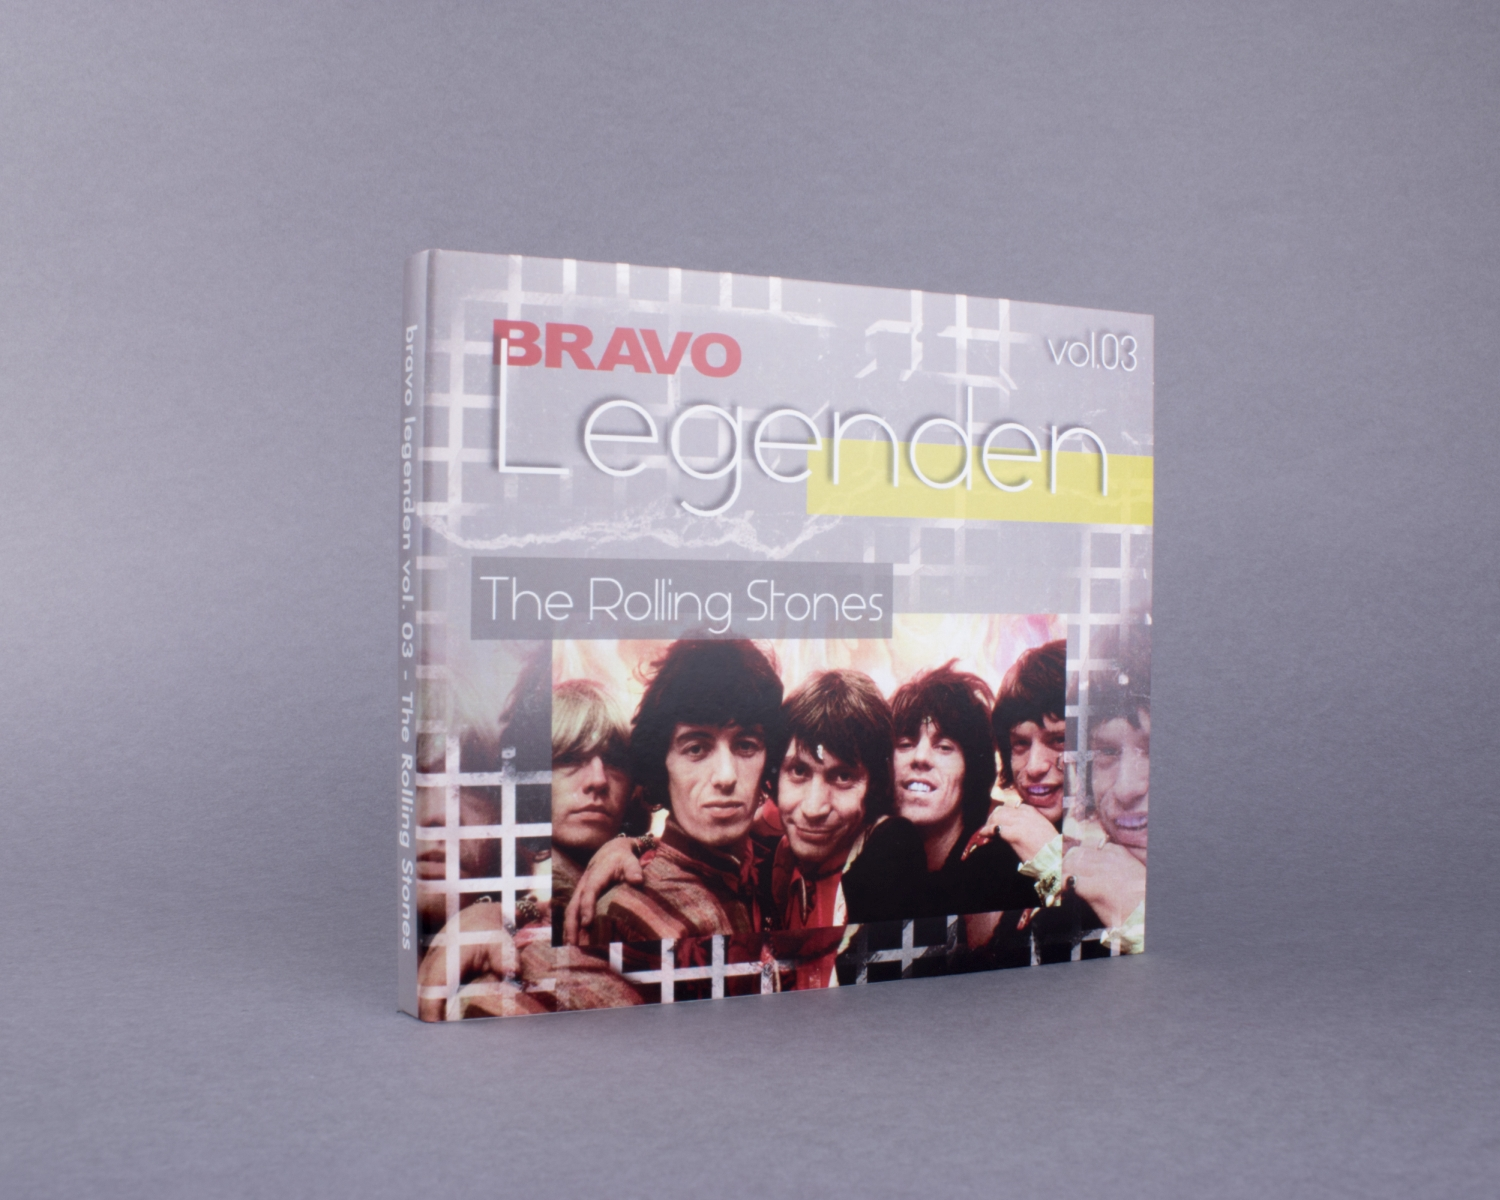 BRAVO Legenden Vol. 03 – THE ROLLING STONES